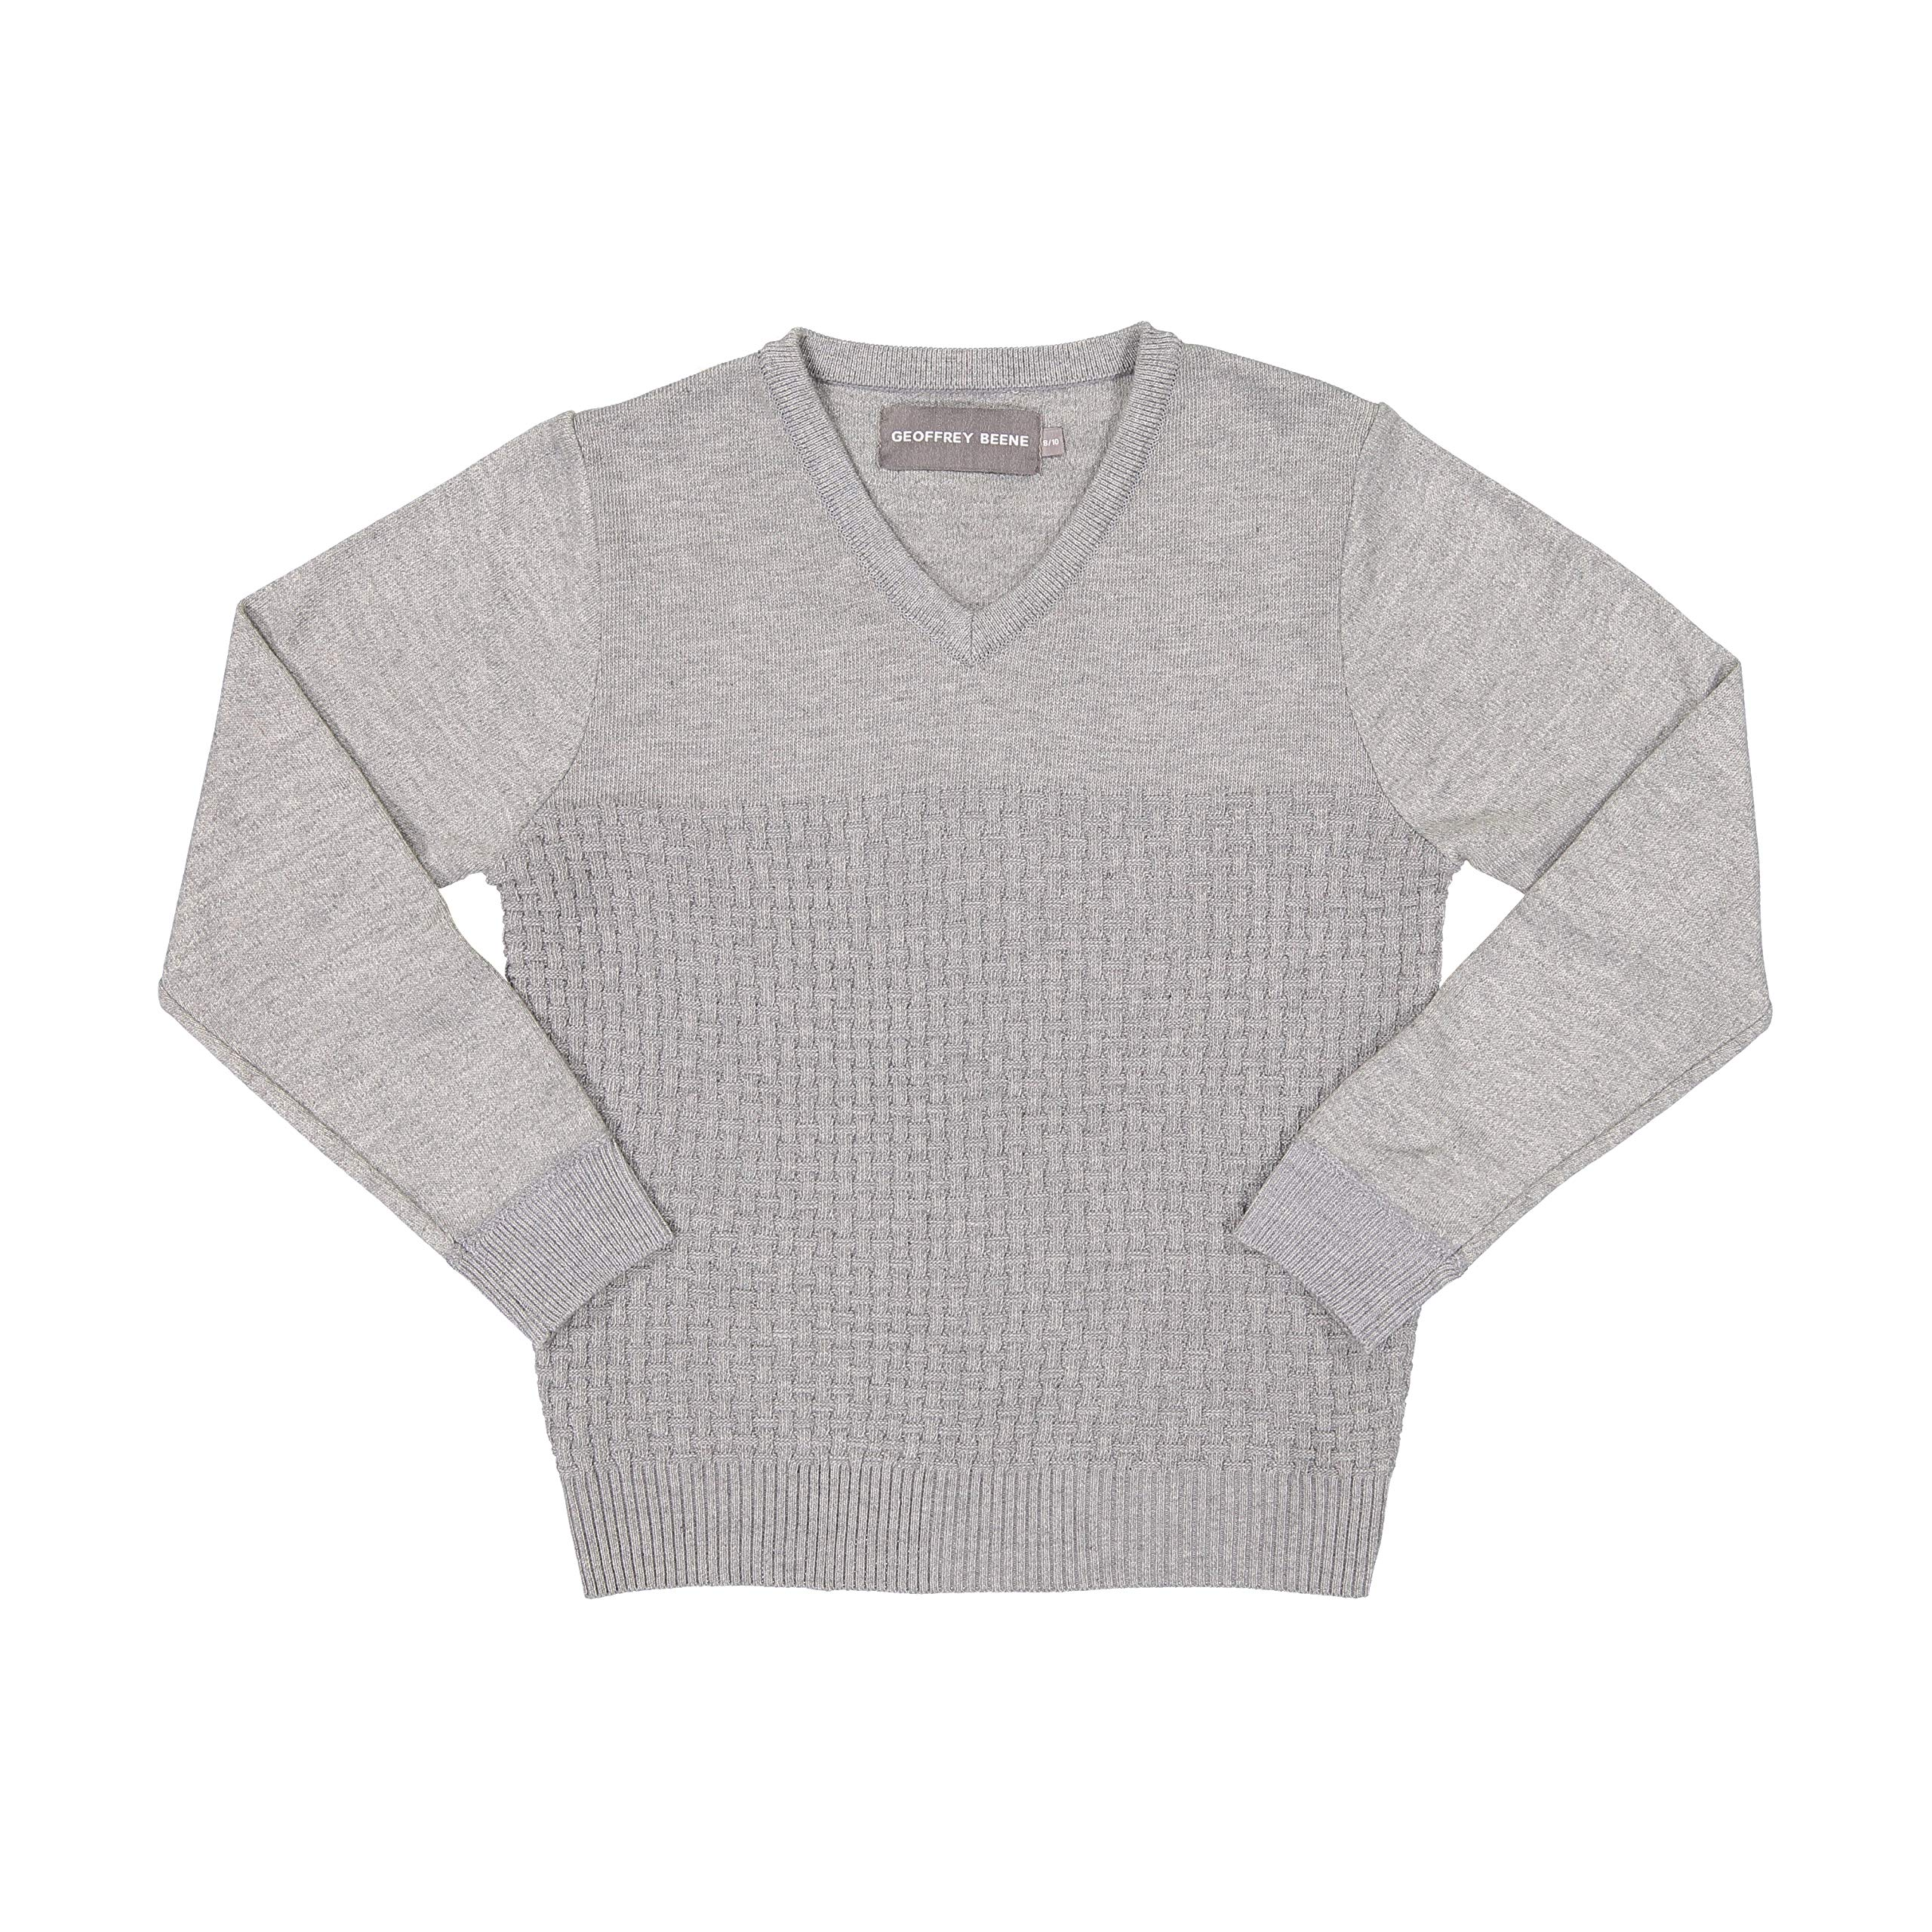 Boys Geoffrey Beene Designer Fashion Sweater - Many Colors and Pattern Available